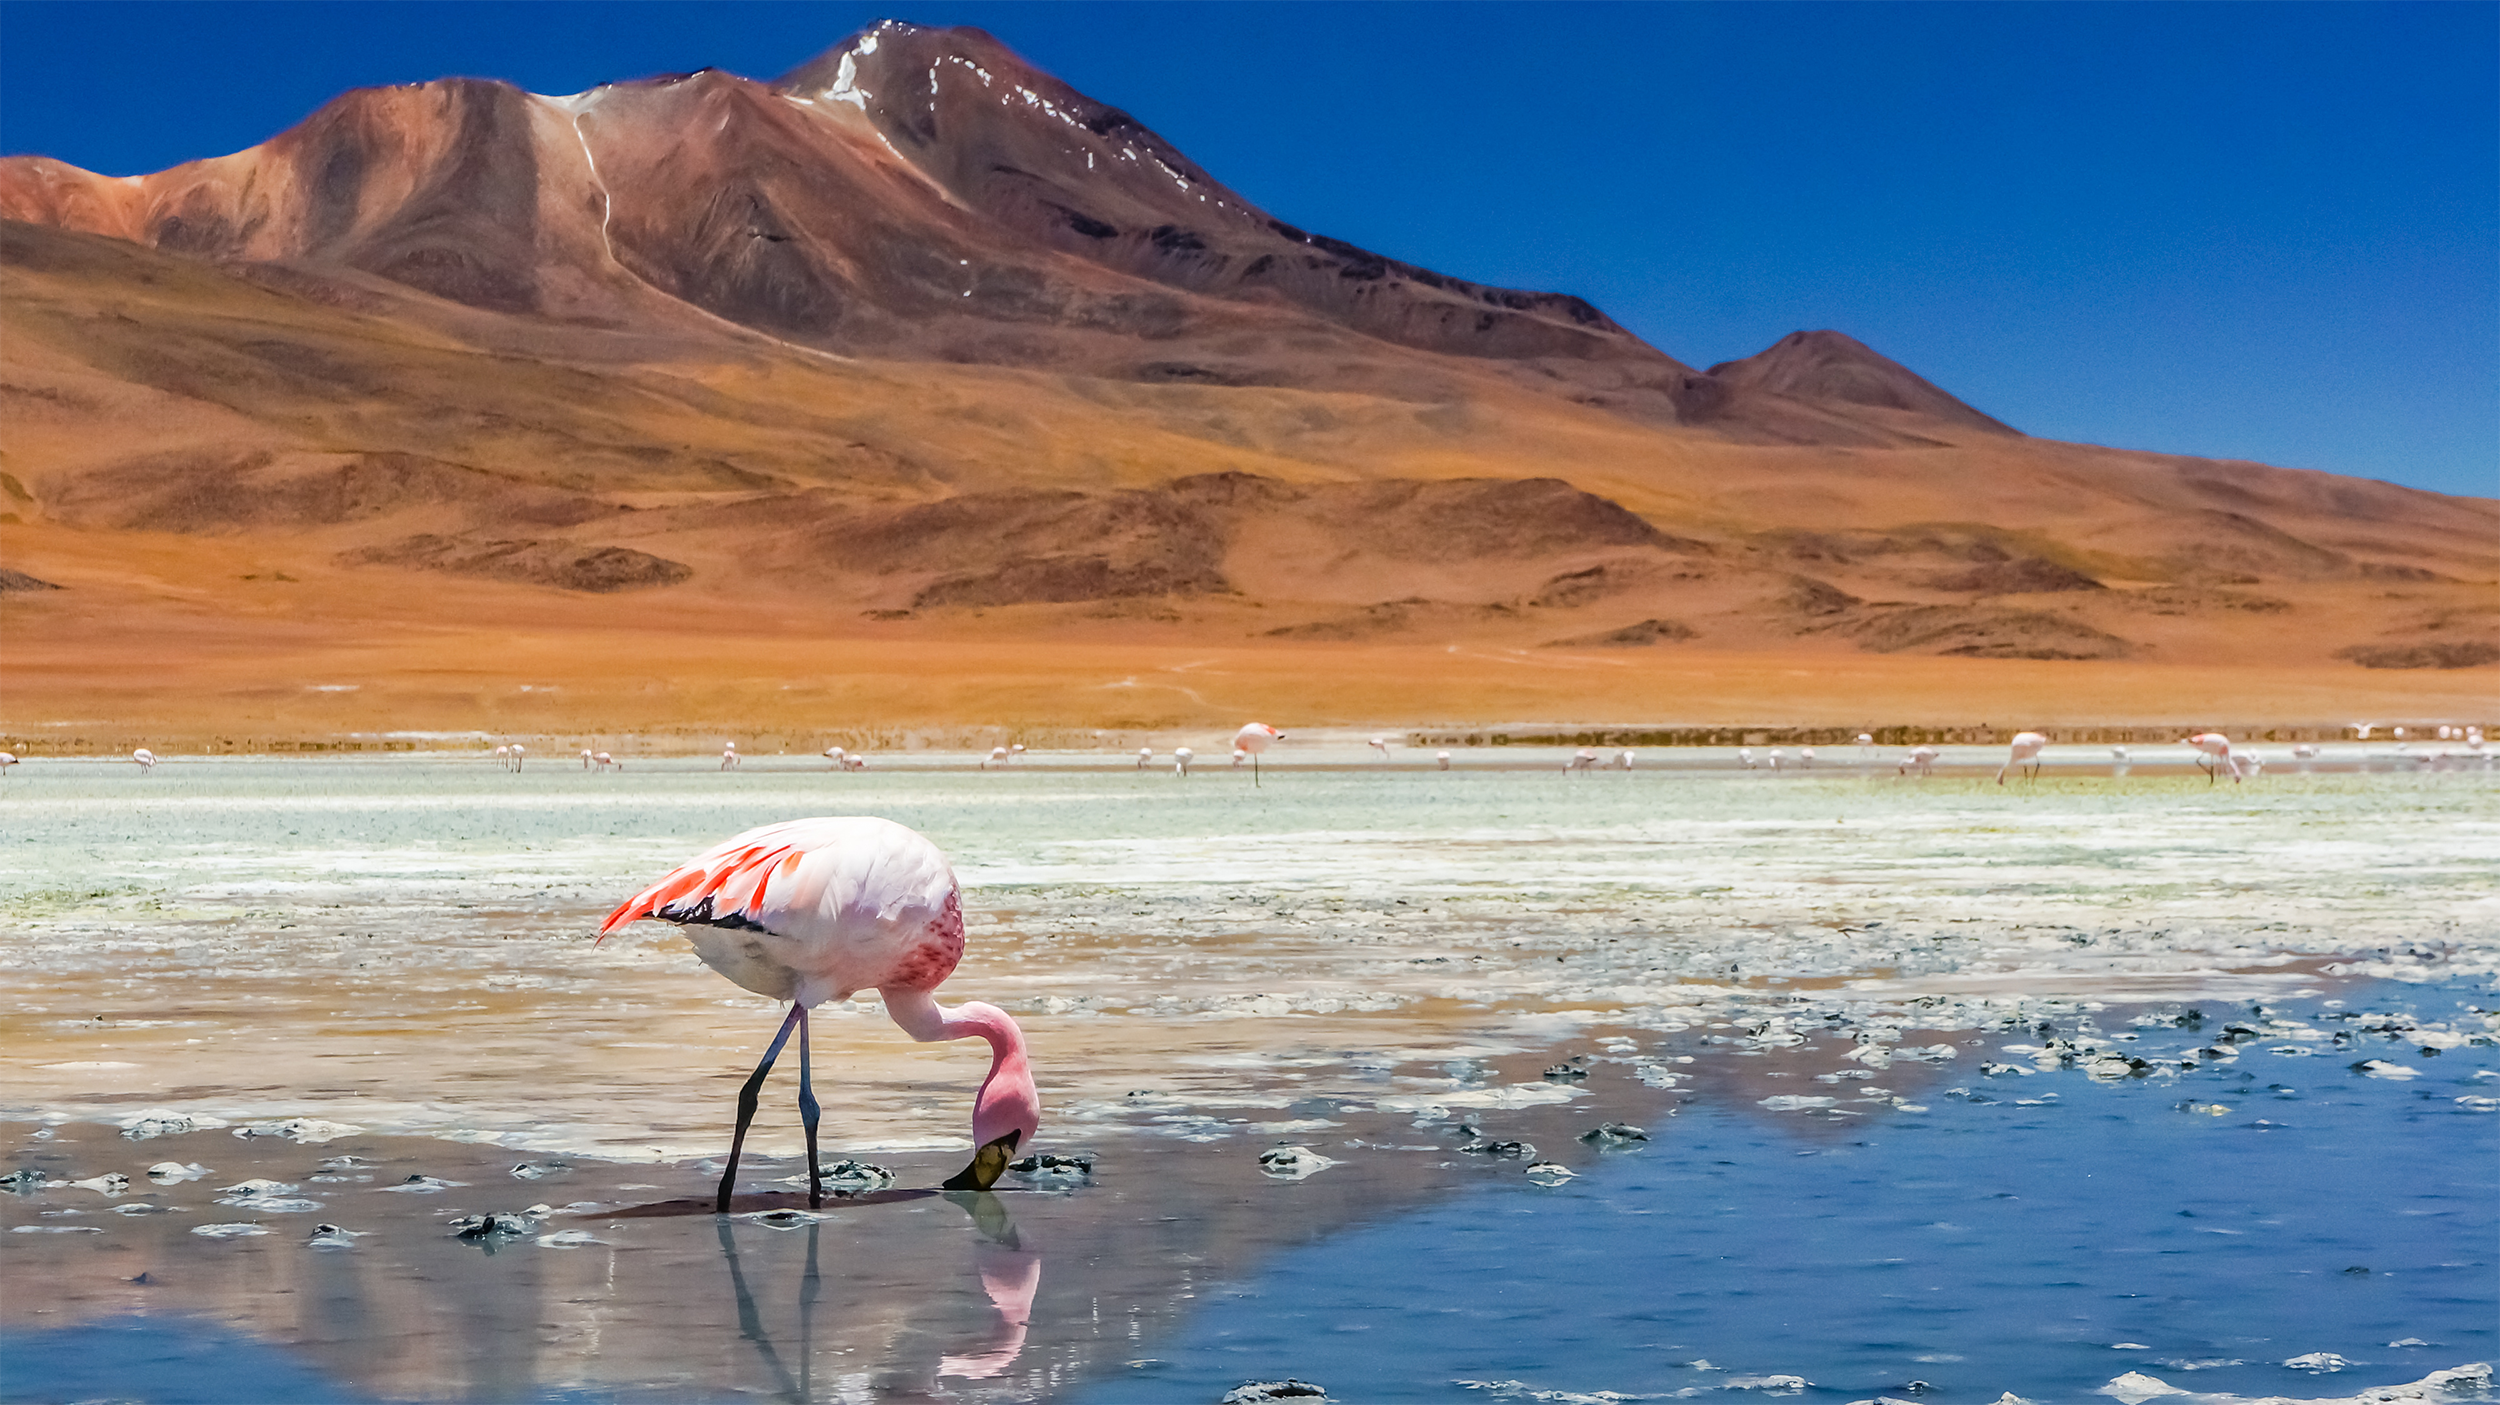 For the first time in 54 years the Atacama desert will play host to a Total Solar Eclipse. -